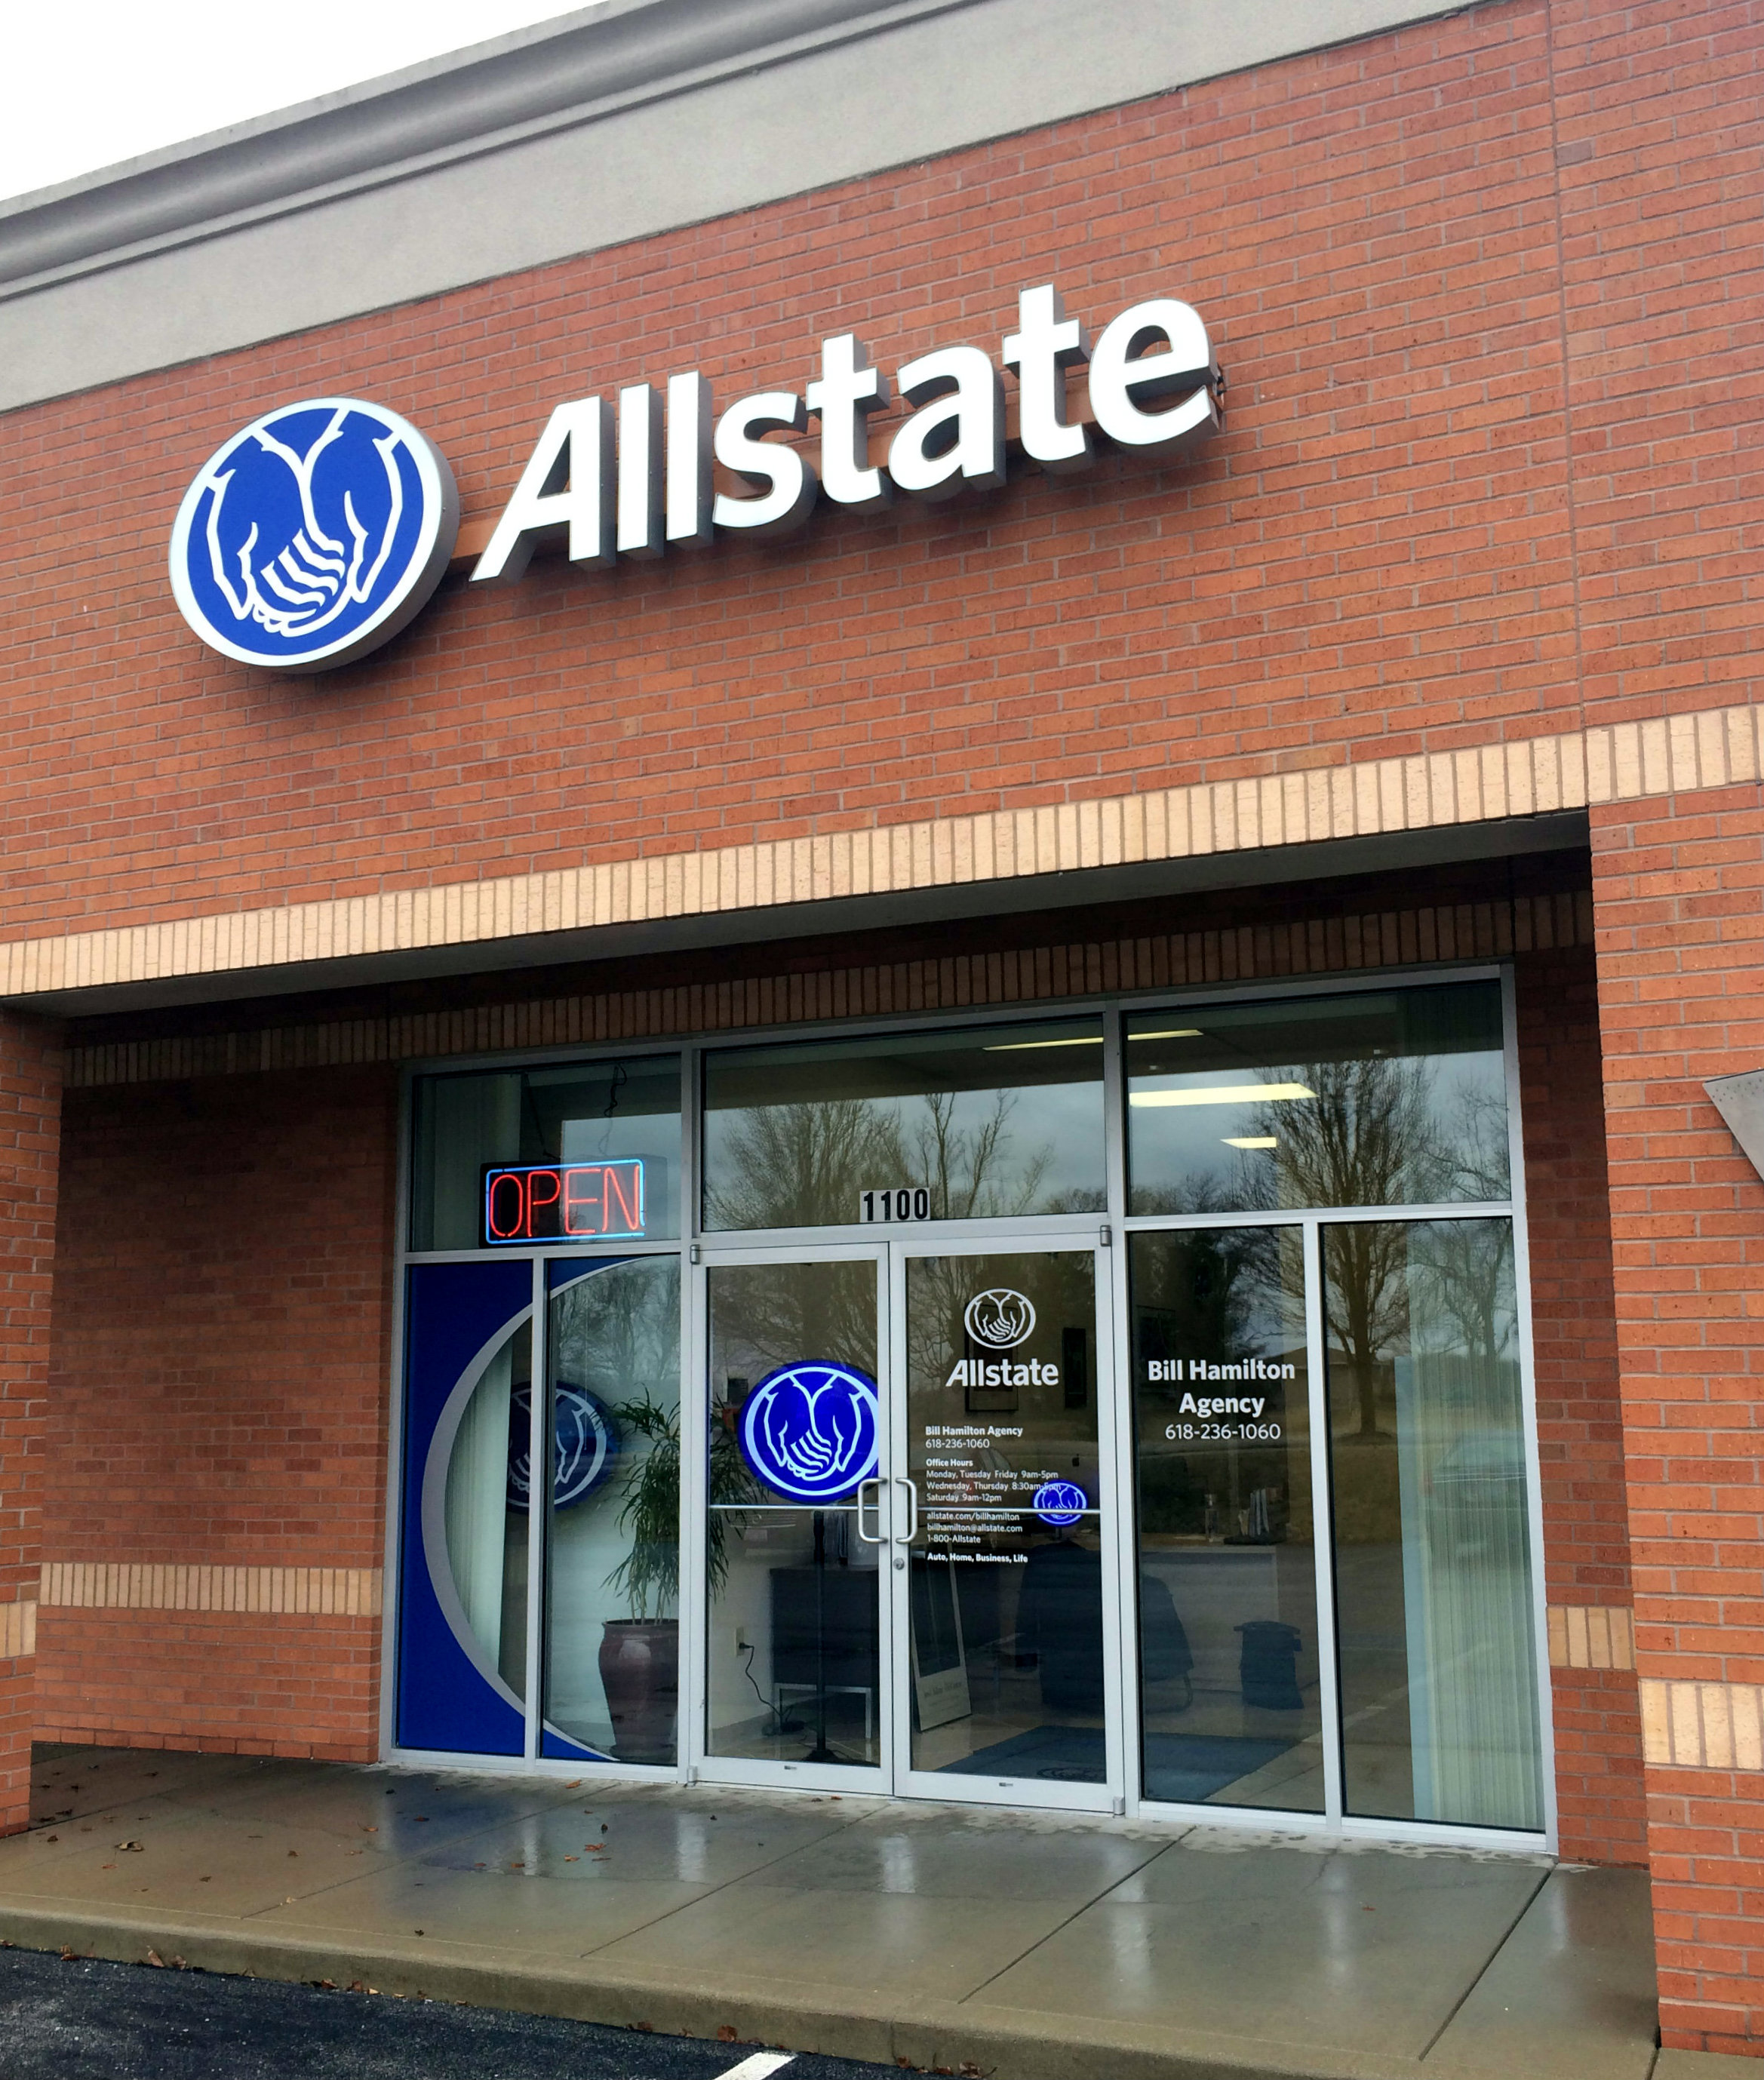 Allstate Get A Quote Phone Number: Bill G Hamilton: Allstate Insurance Coupons Shiloh IL Near